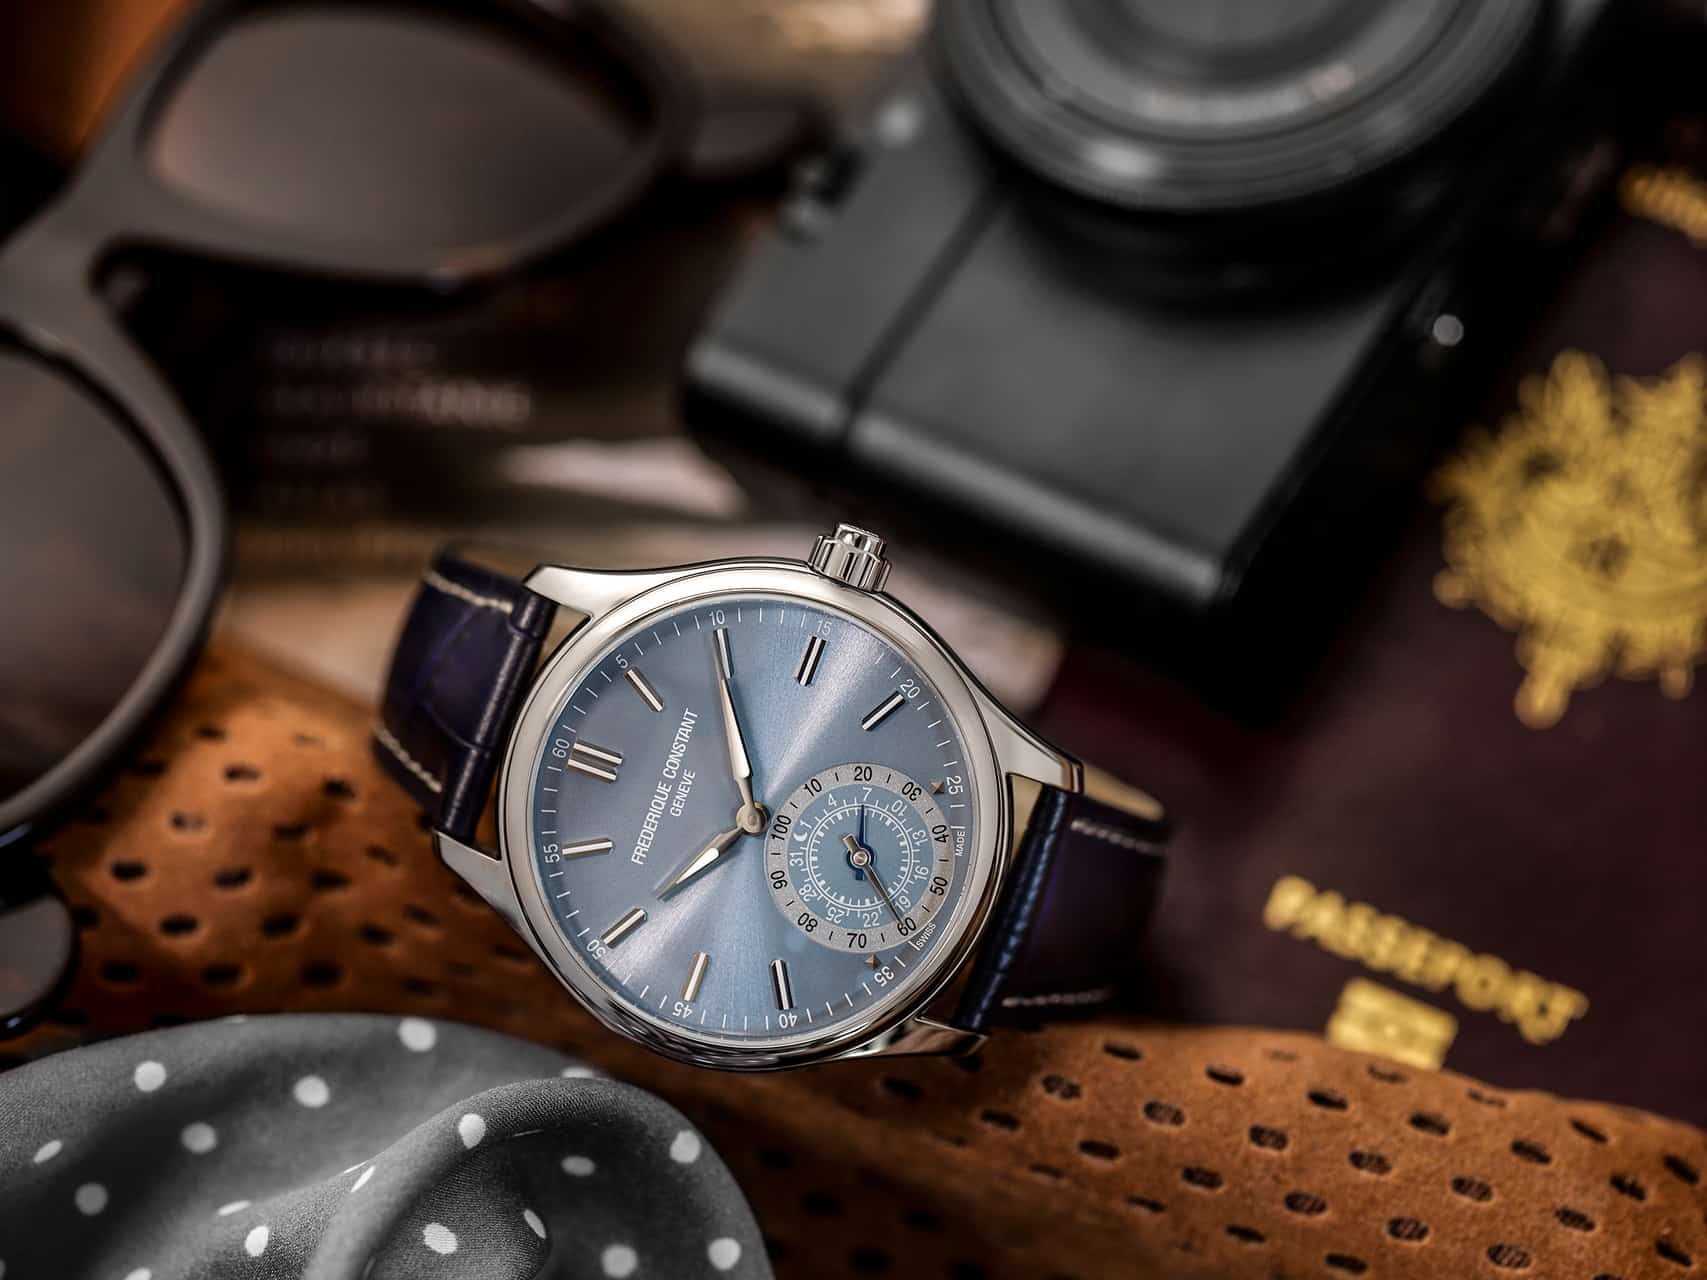 New generation Horological Smartwatches for gents now available at Frederique Constant